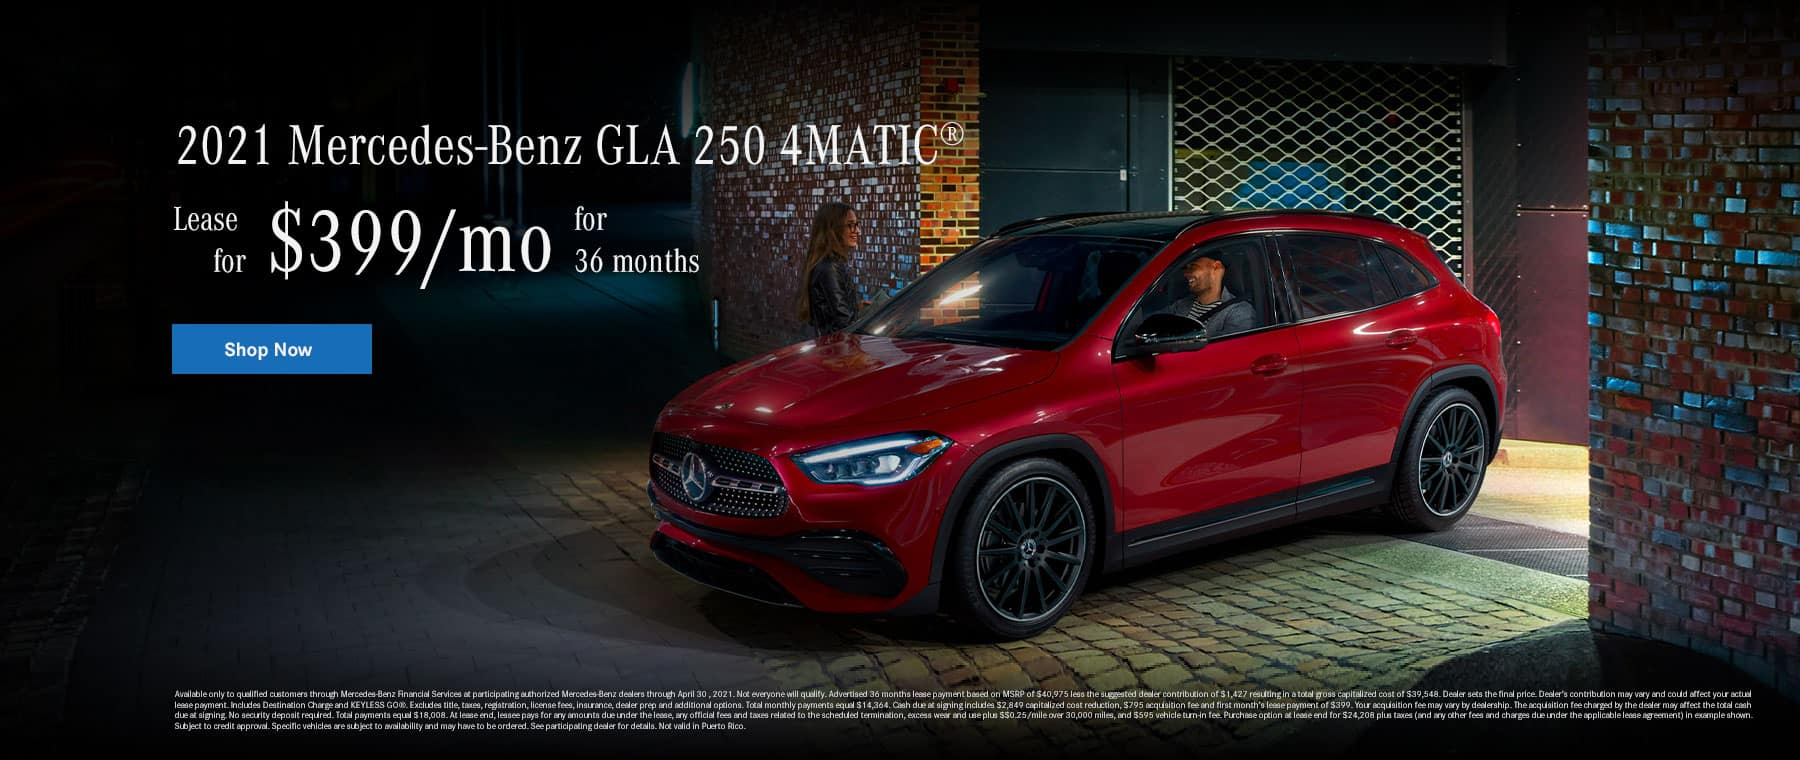 2021 Mercedes-Benz GLA 250 4MATIC - $399/mo for 36 months